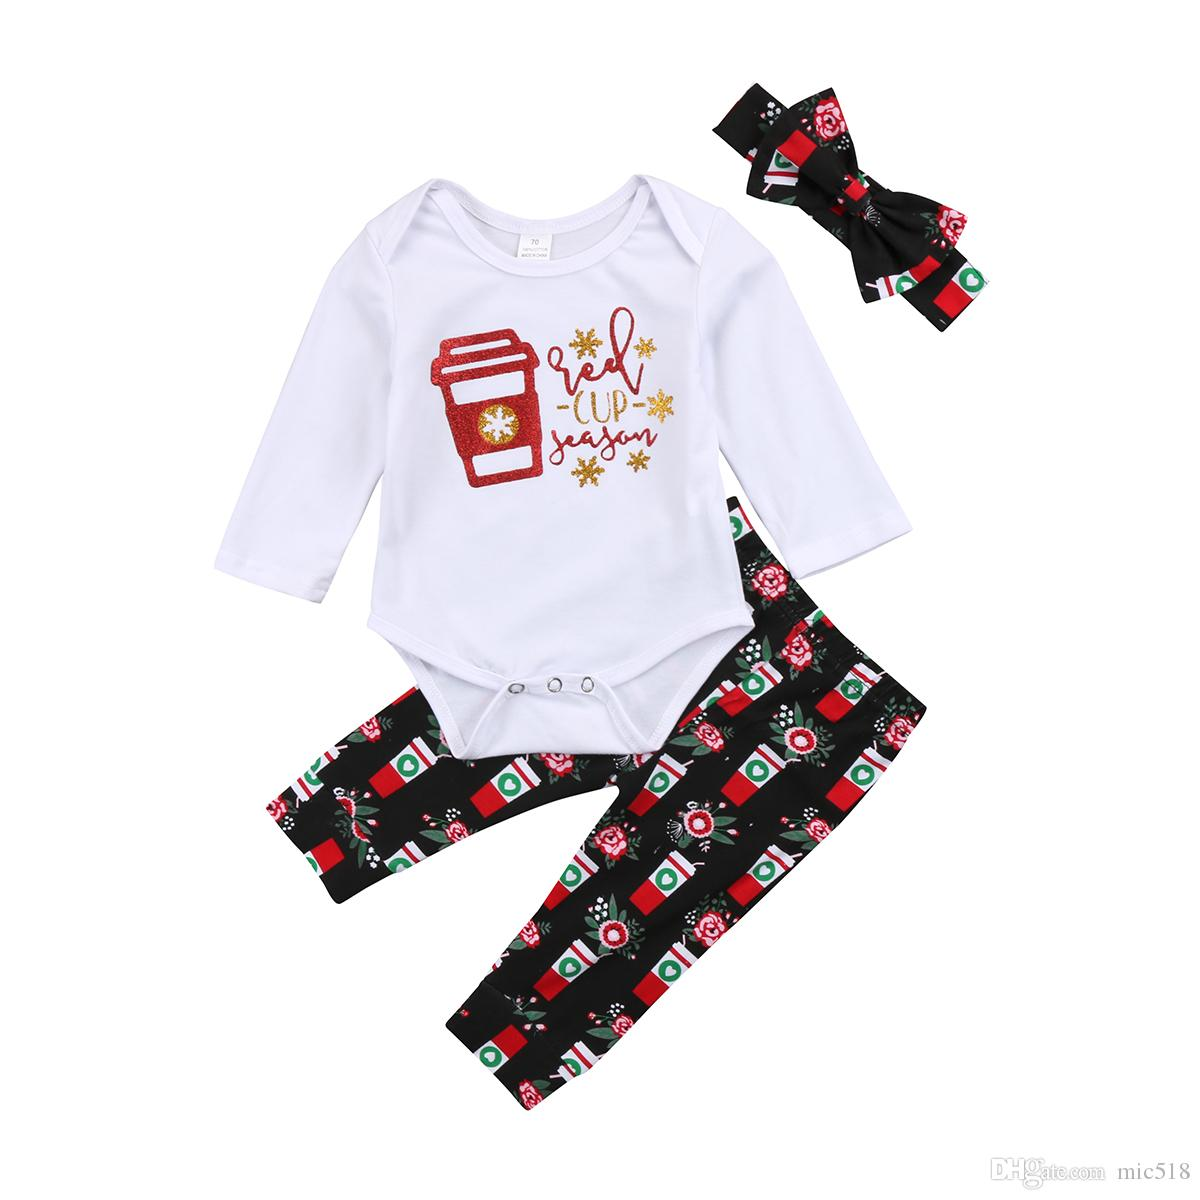 f3a9ad8d14cf 2018 Brand New Newborn Toddler Infant Baby Girls Boys Christmas Set ...